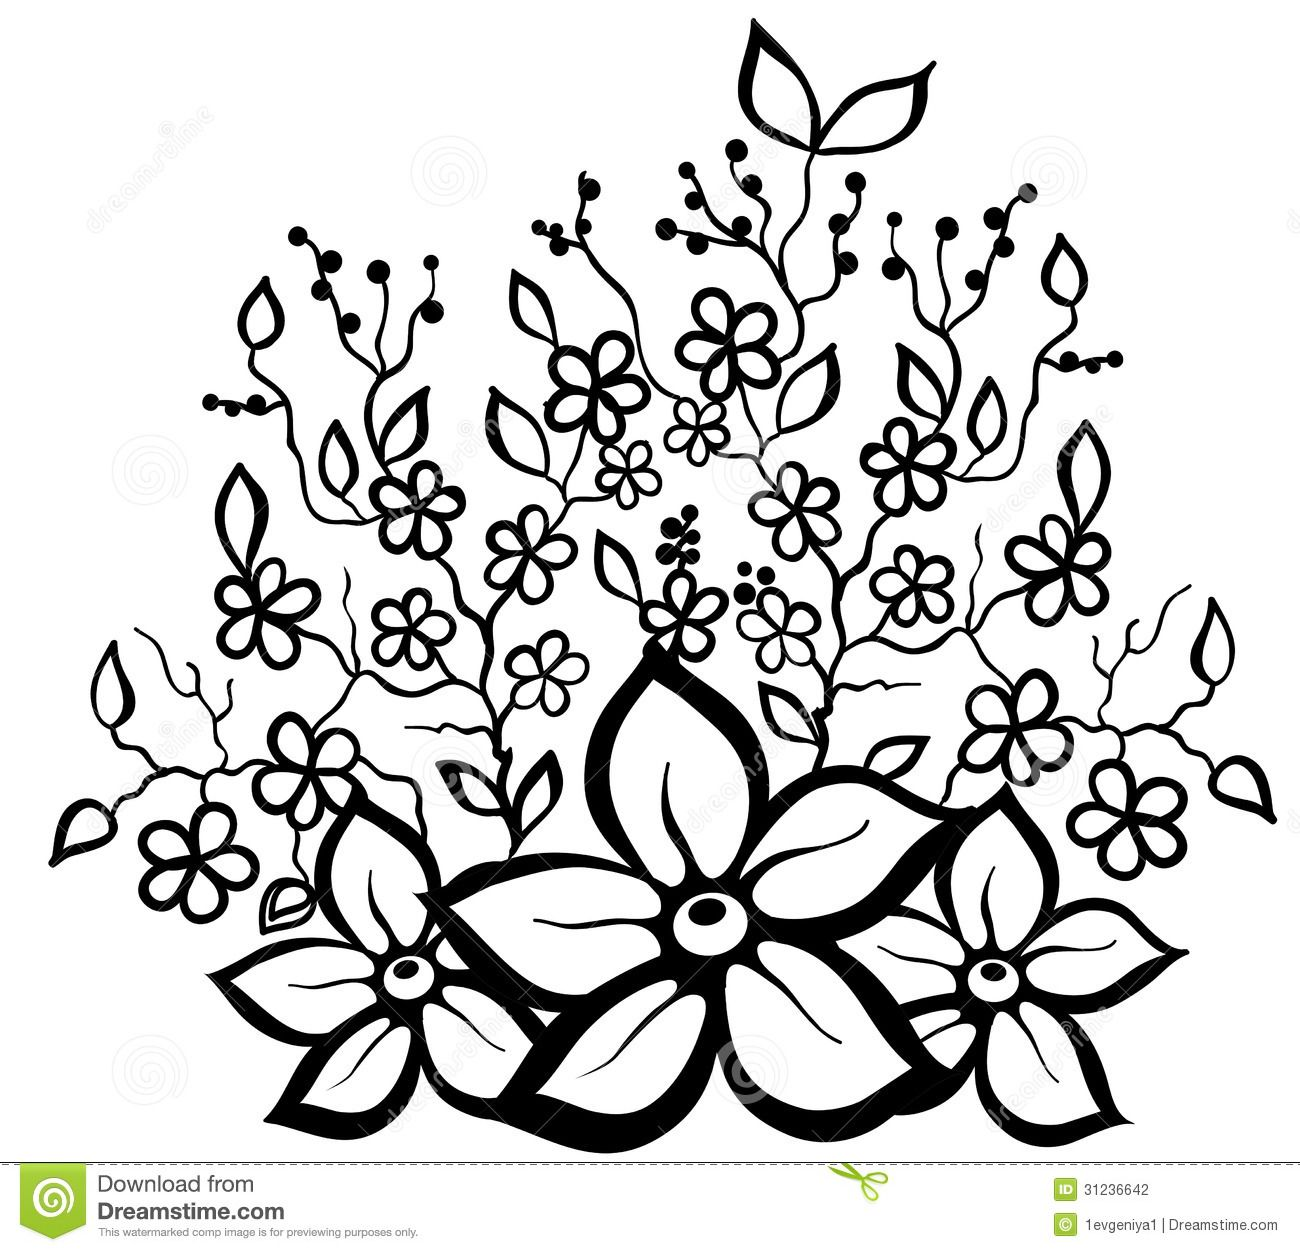 black and white floral pattern design element stock